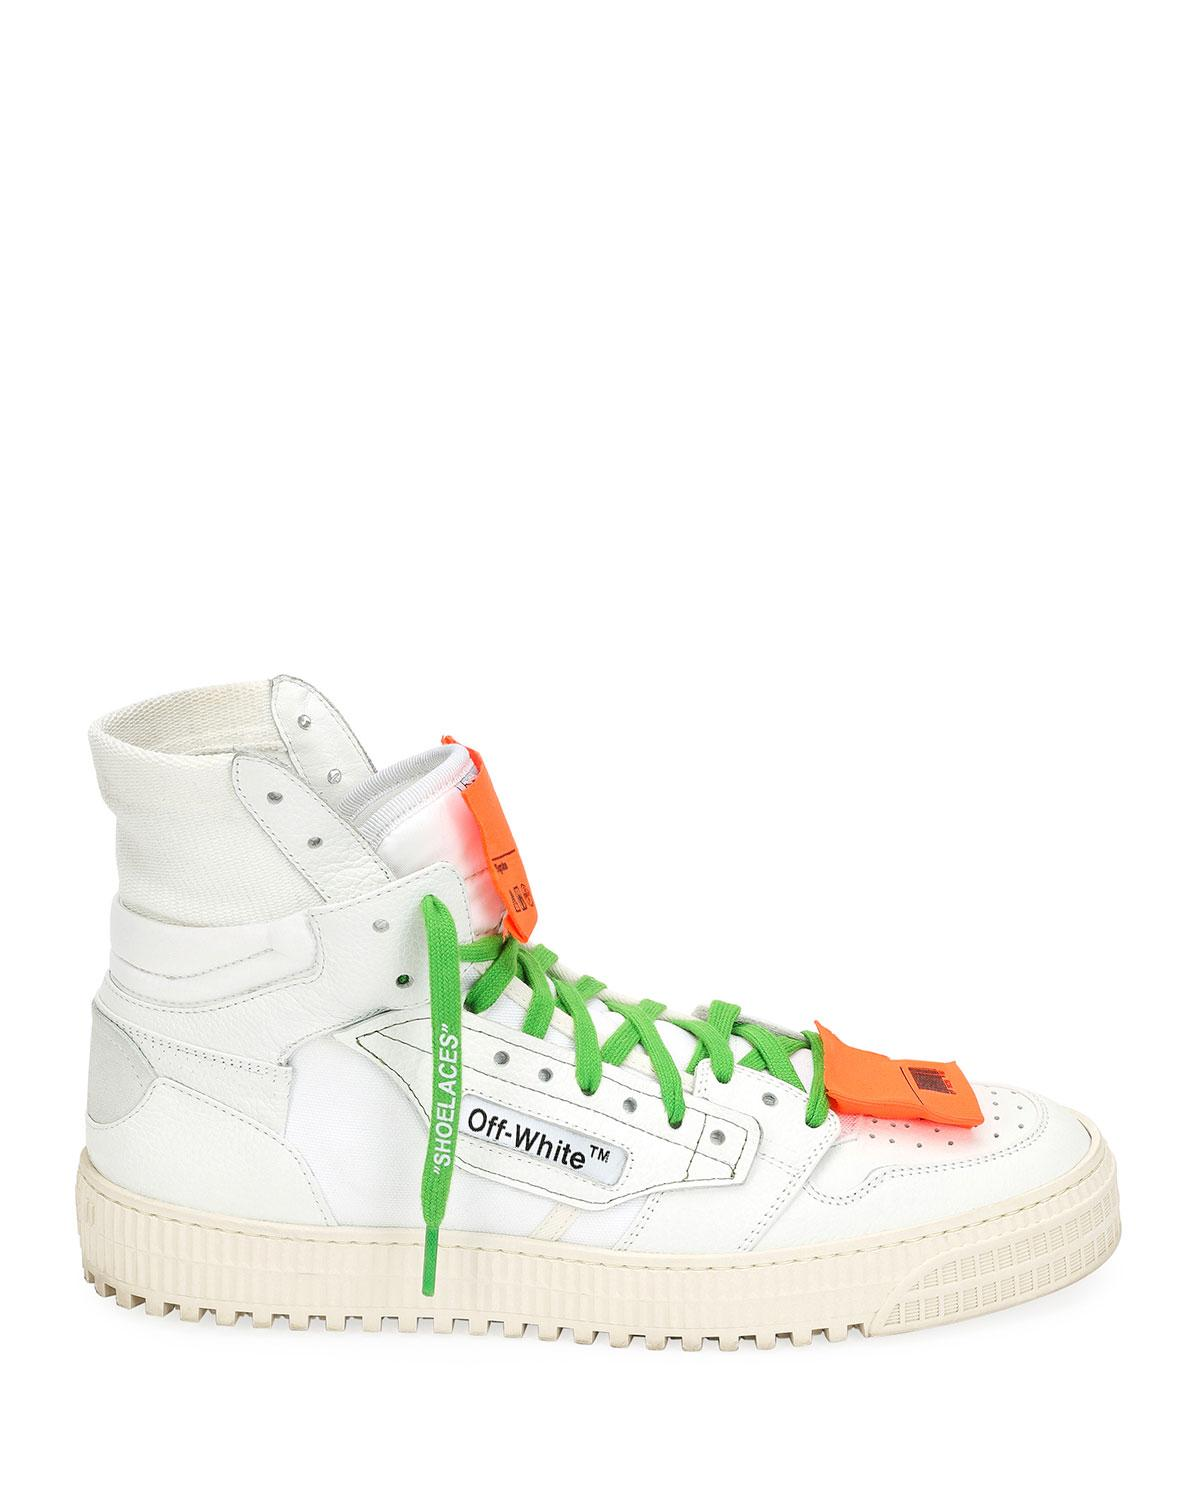 b919000beedb1 Lyst - Off-White c o Virgil Abloh Men s Low 3.0 Leather High-top Sneakers  in White for Men